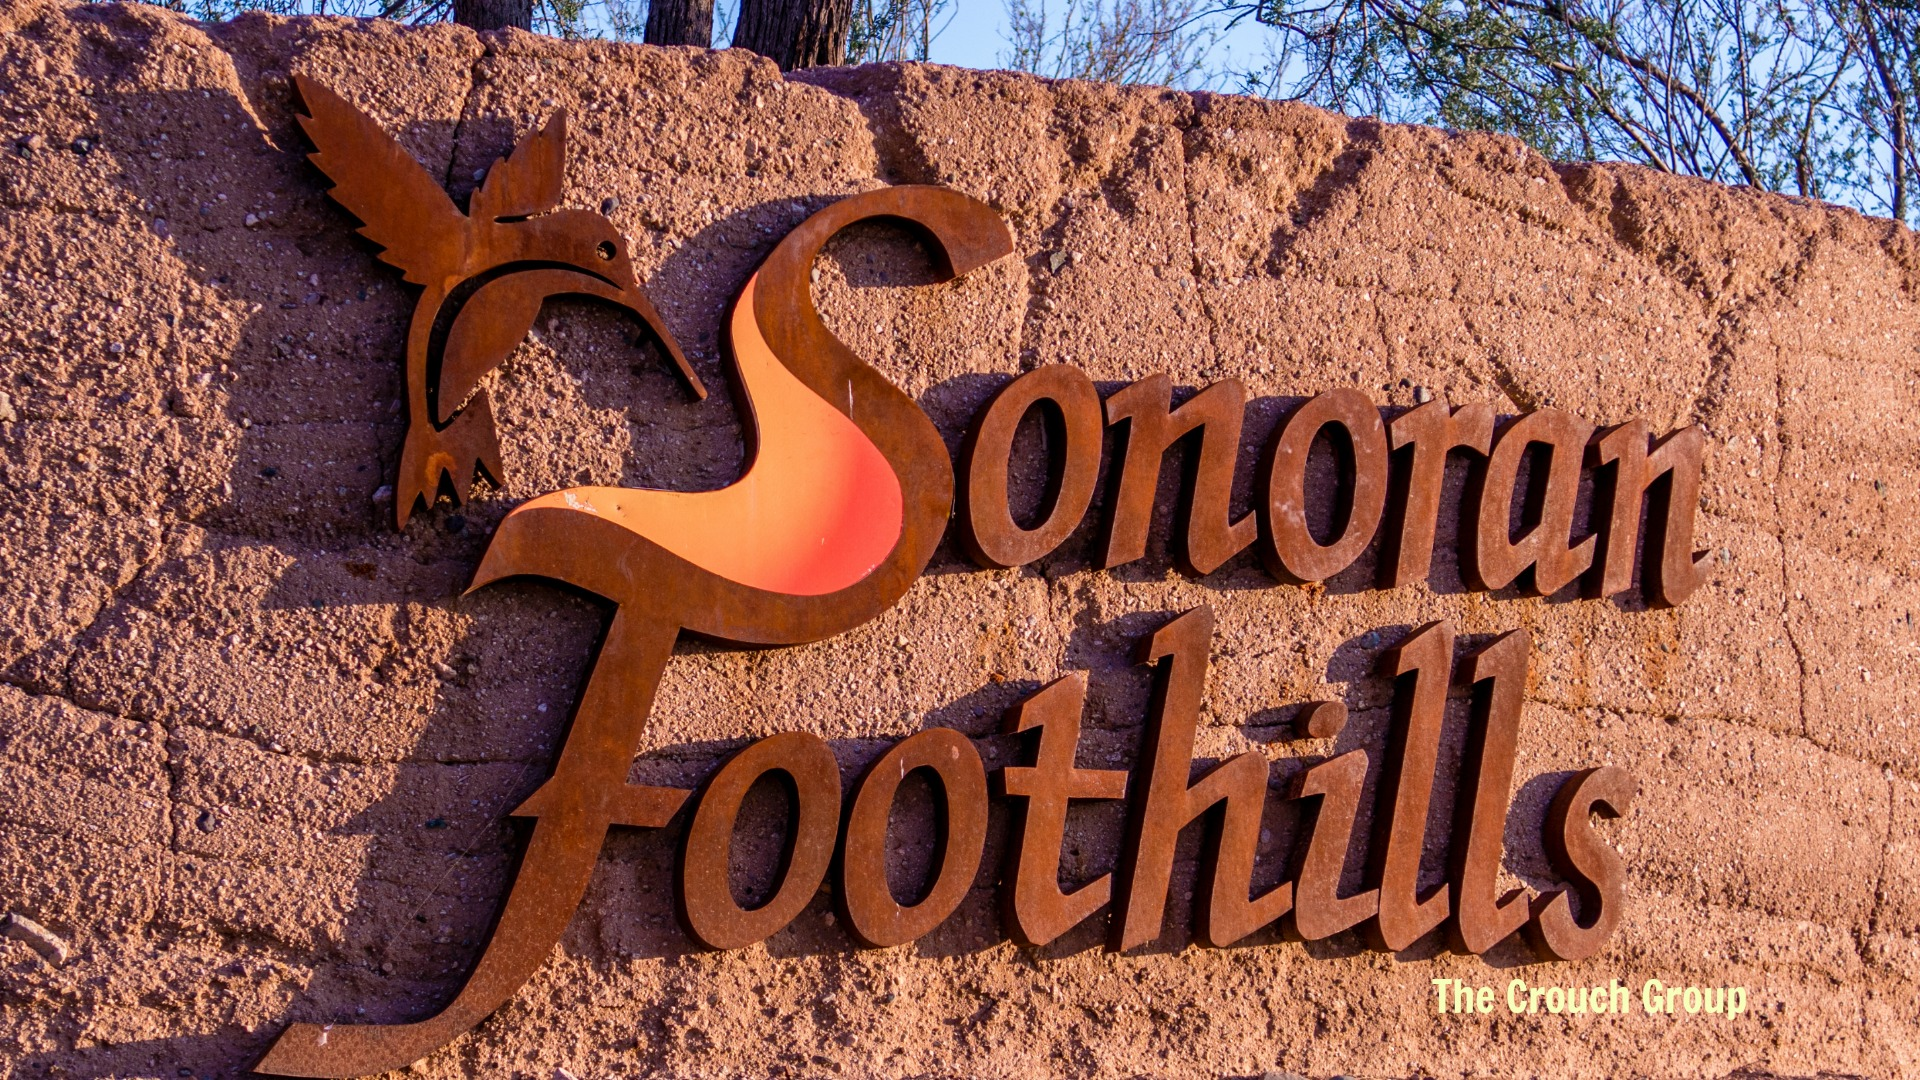 Sonoran Foothills sign for homes